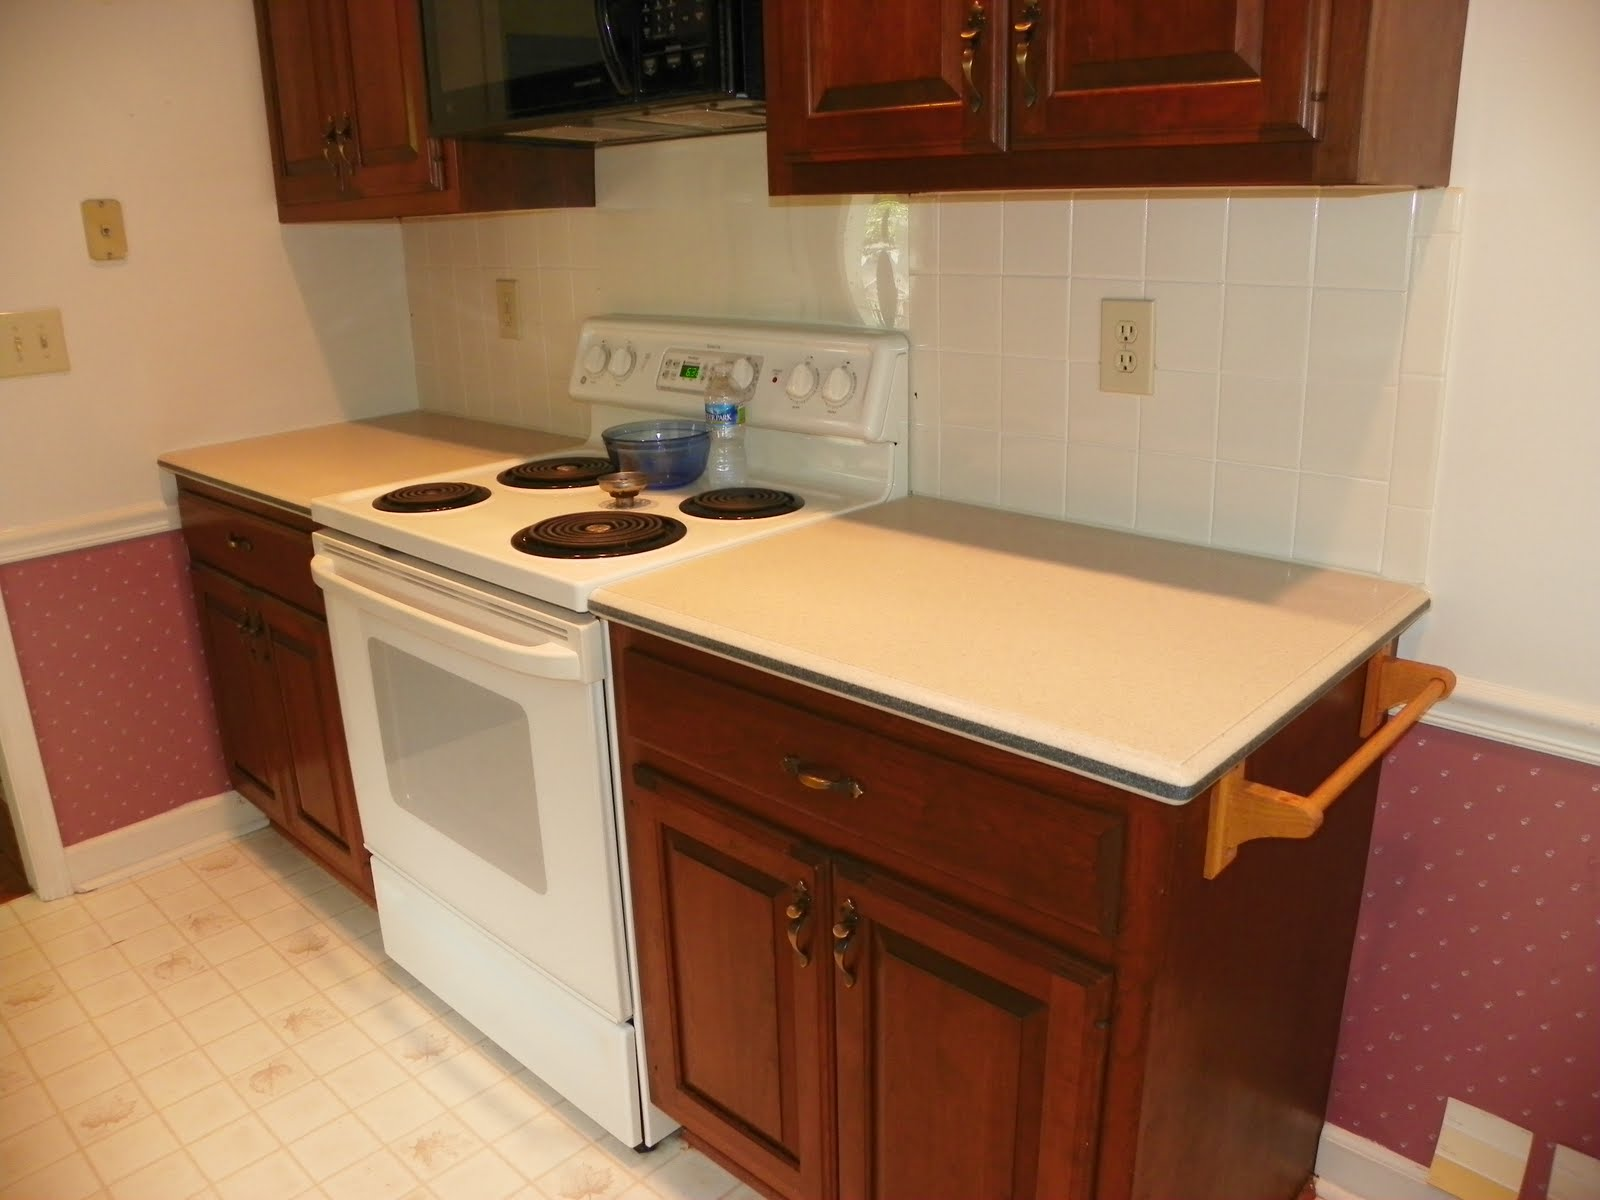 Vintage Laminate Countertops The Solid Surface And Stone Countertop Repair Blog Retro